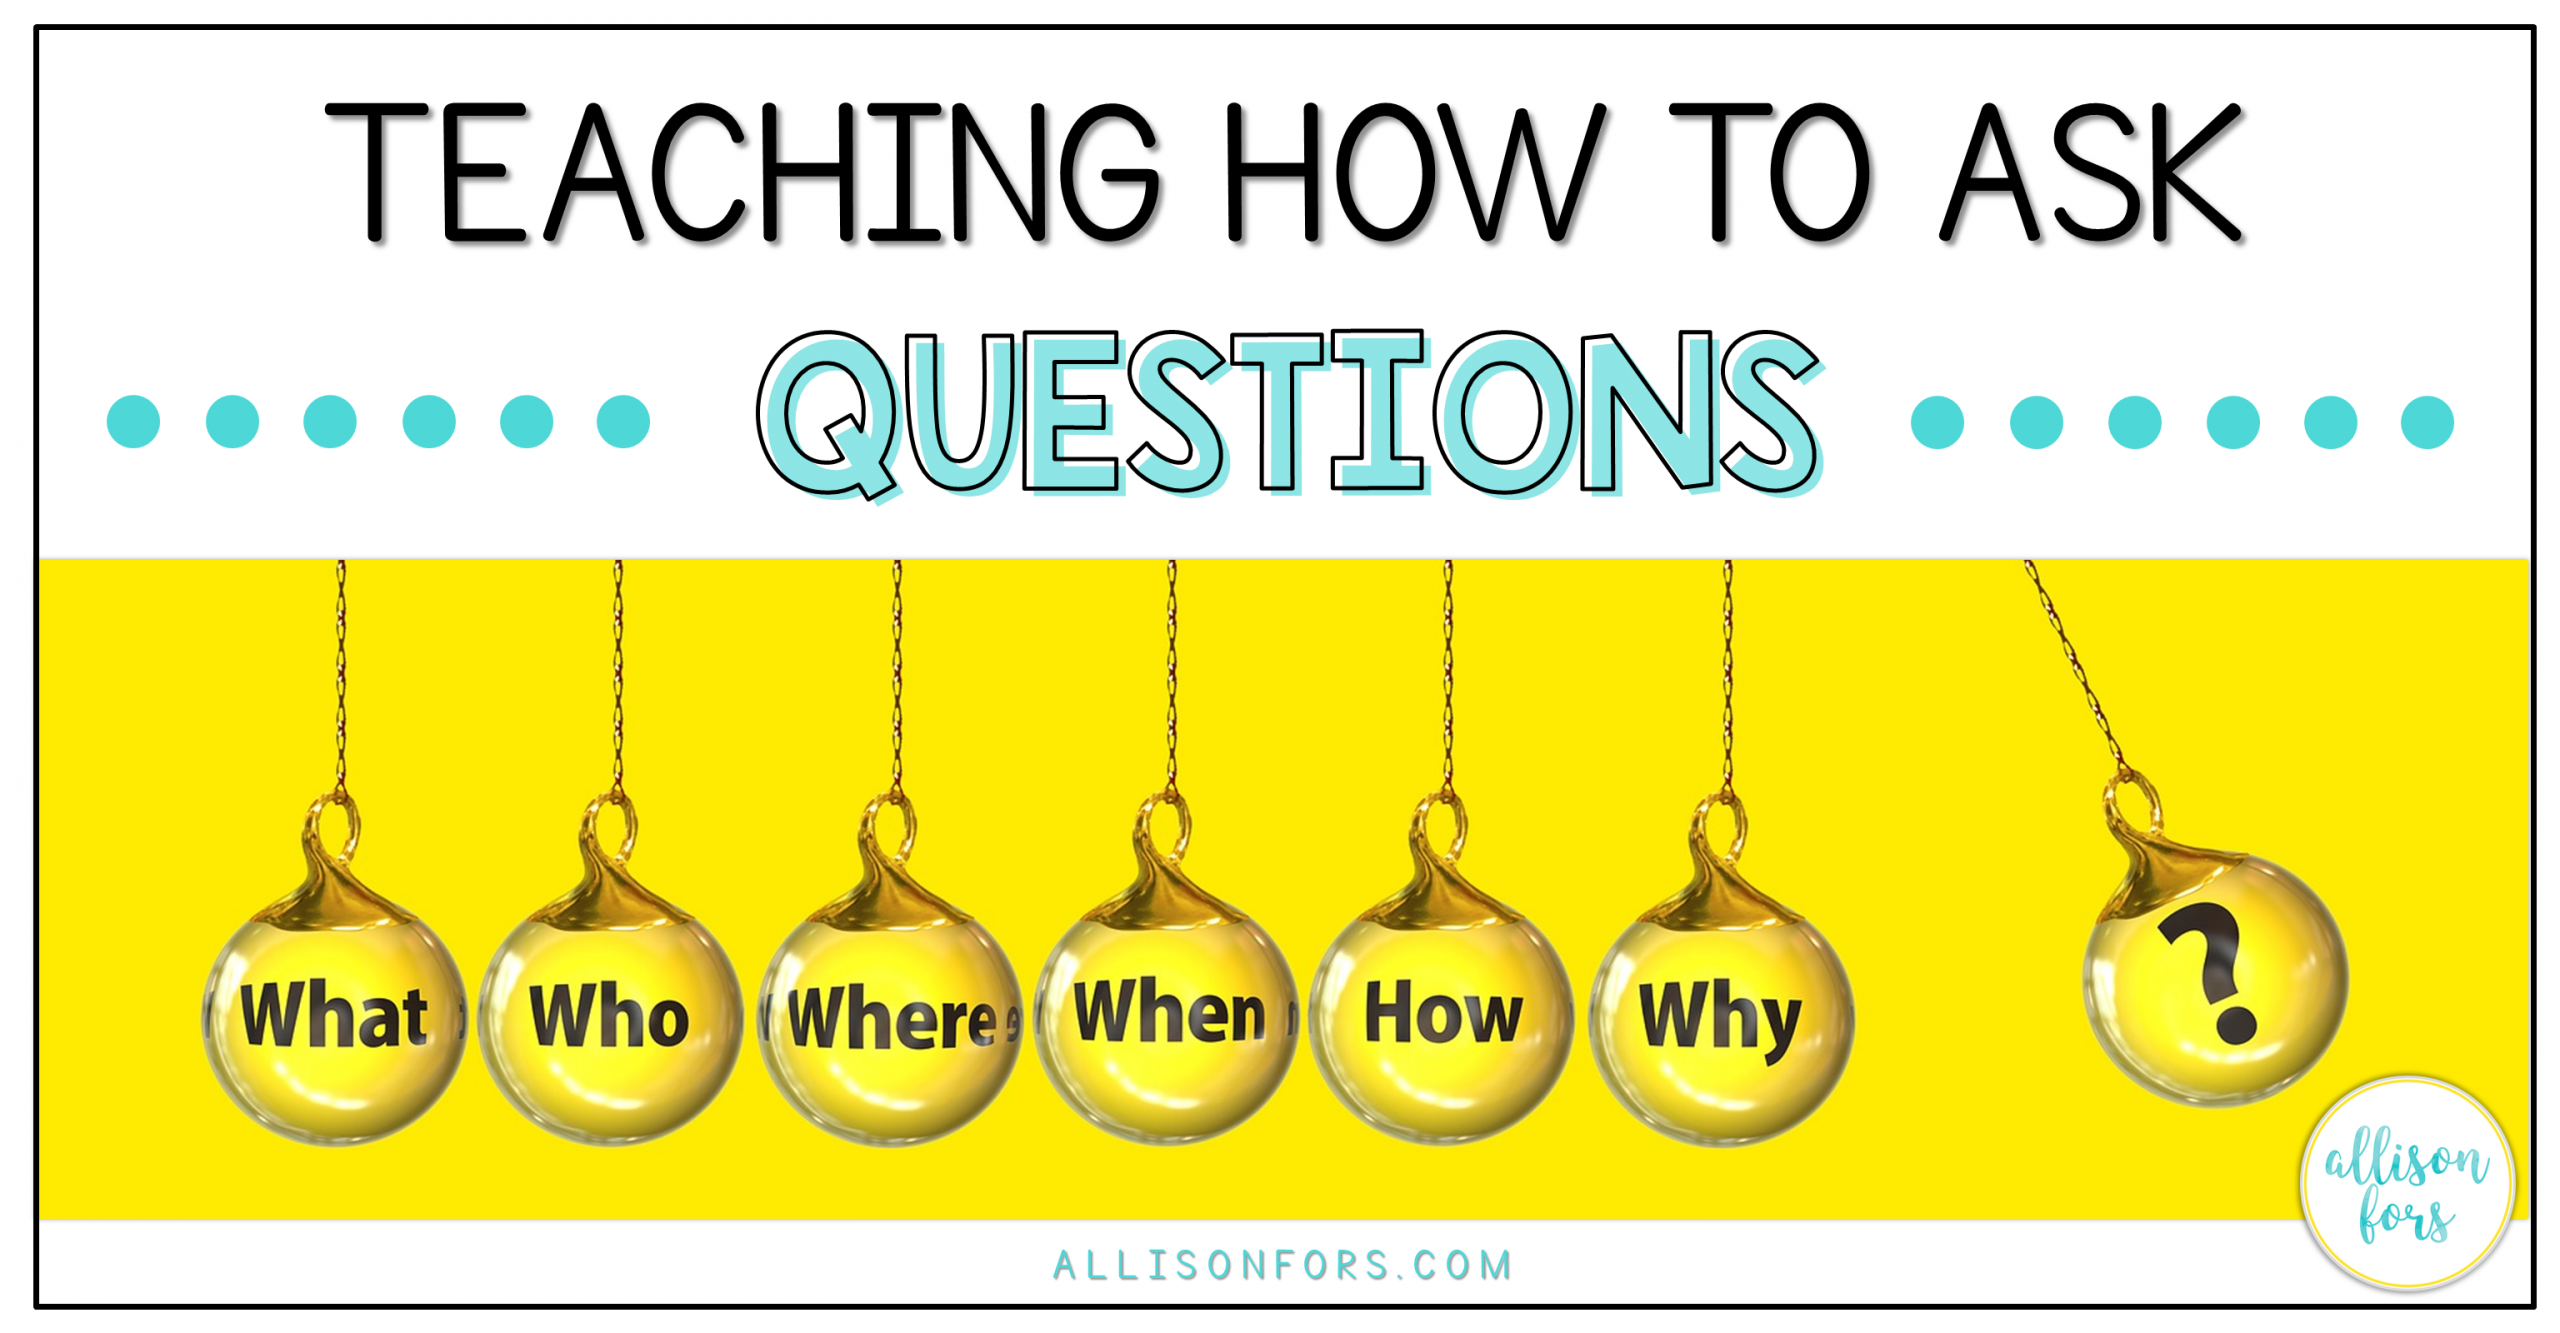 Teaching How to Formulate and Ask Questions